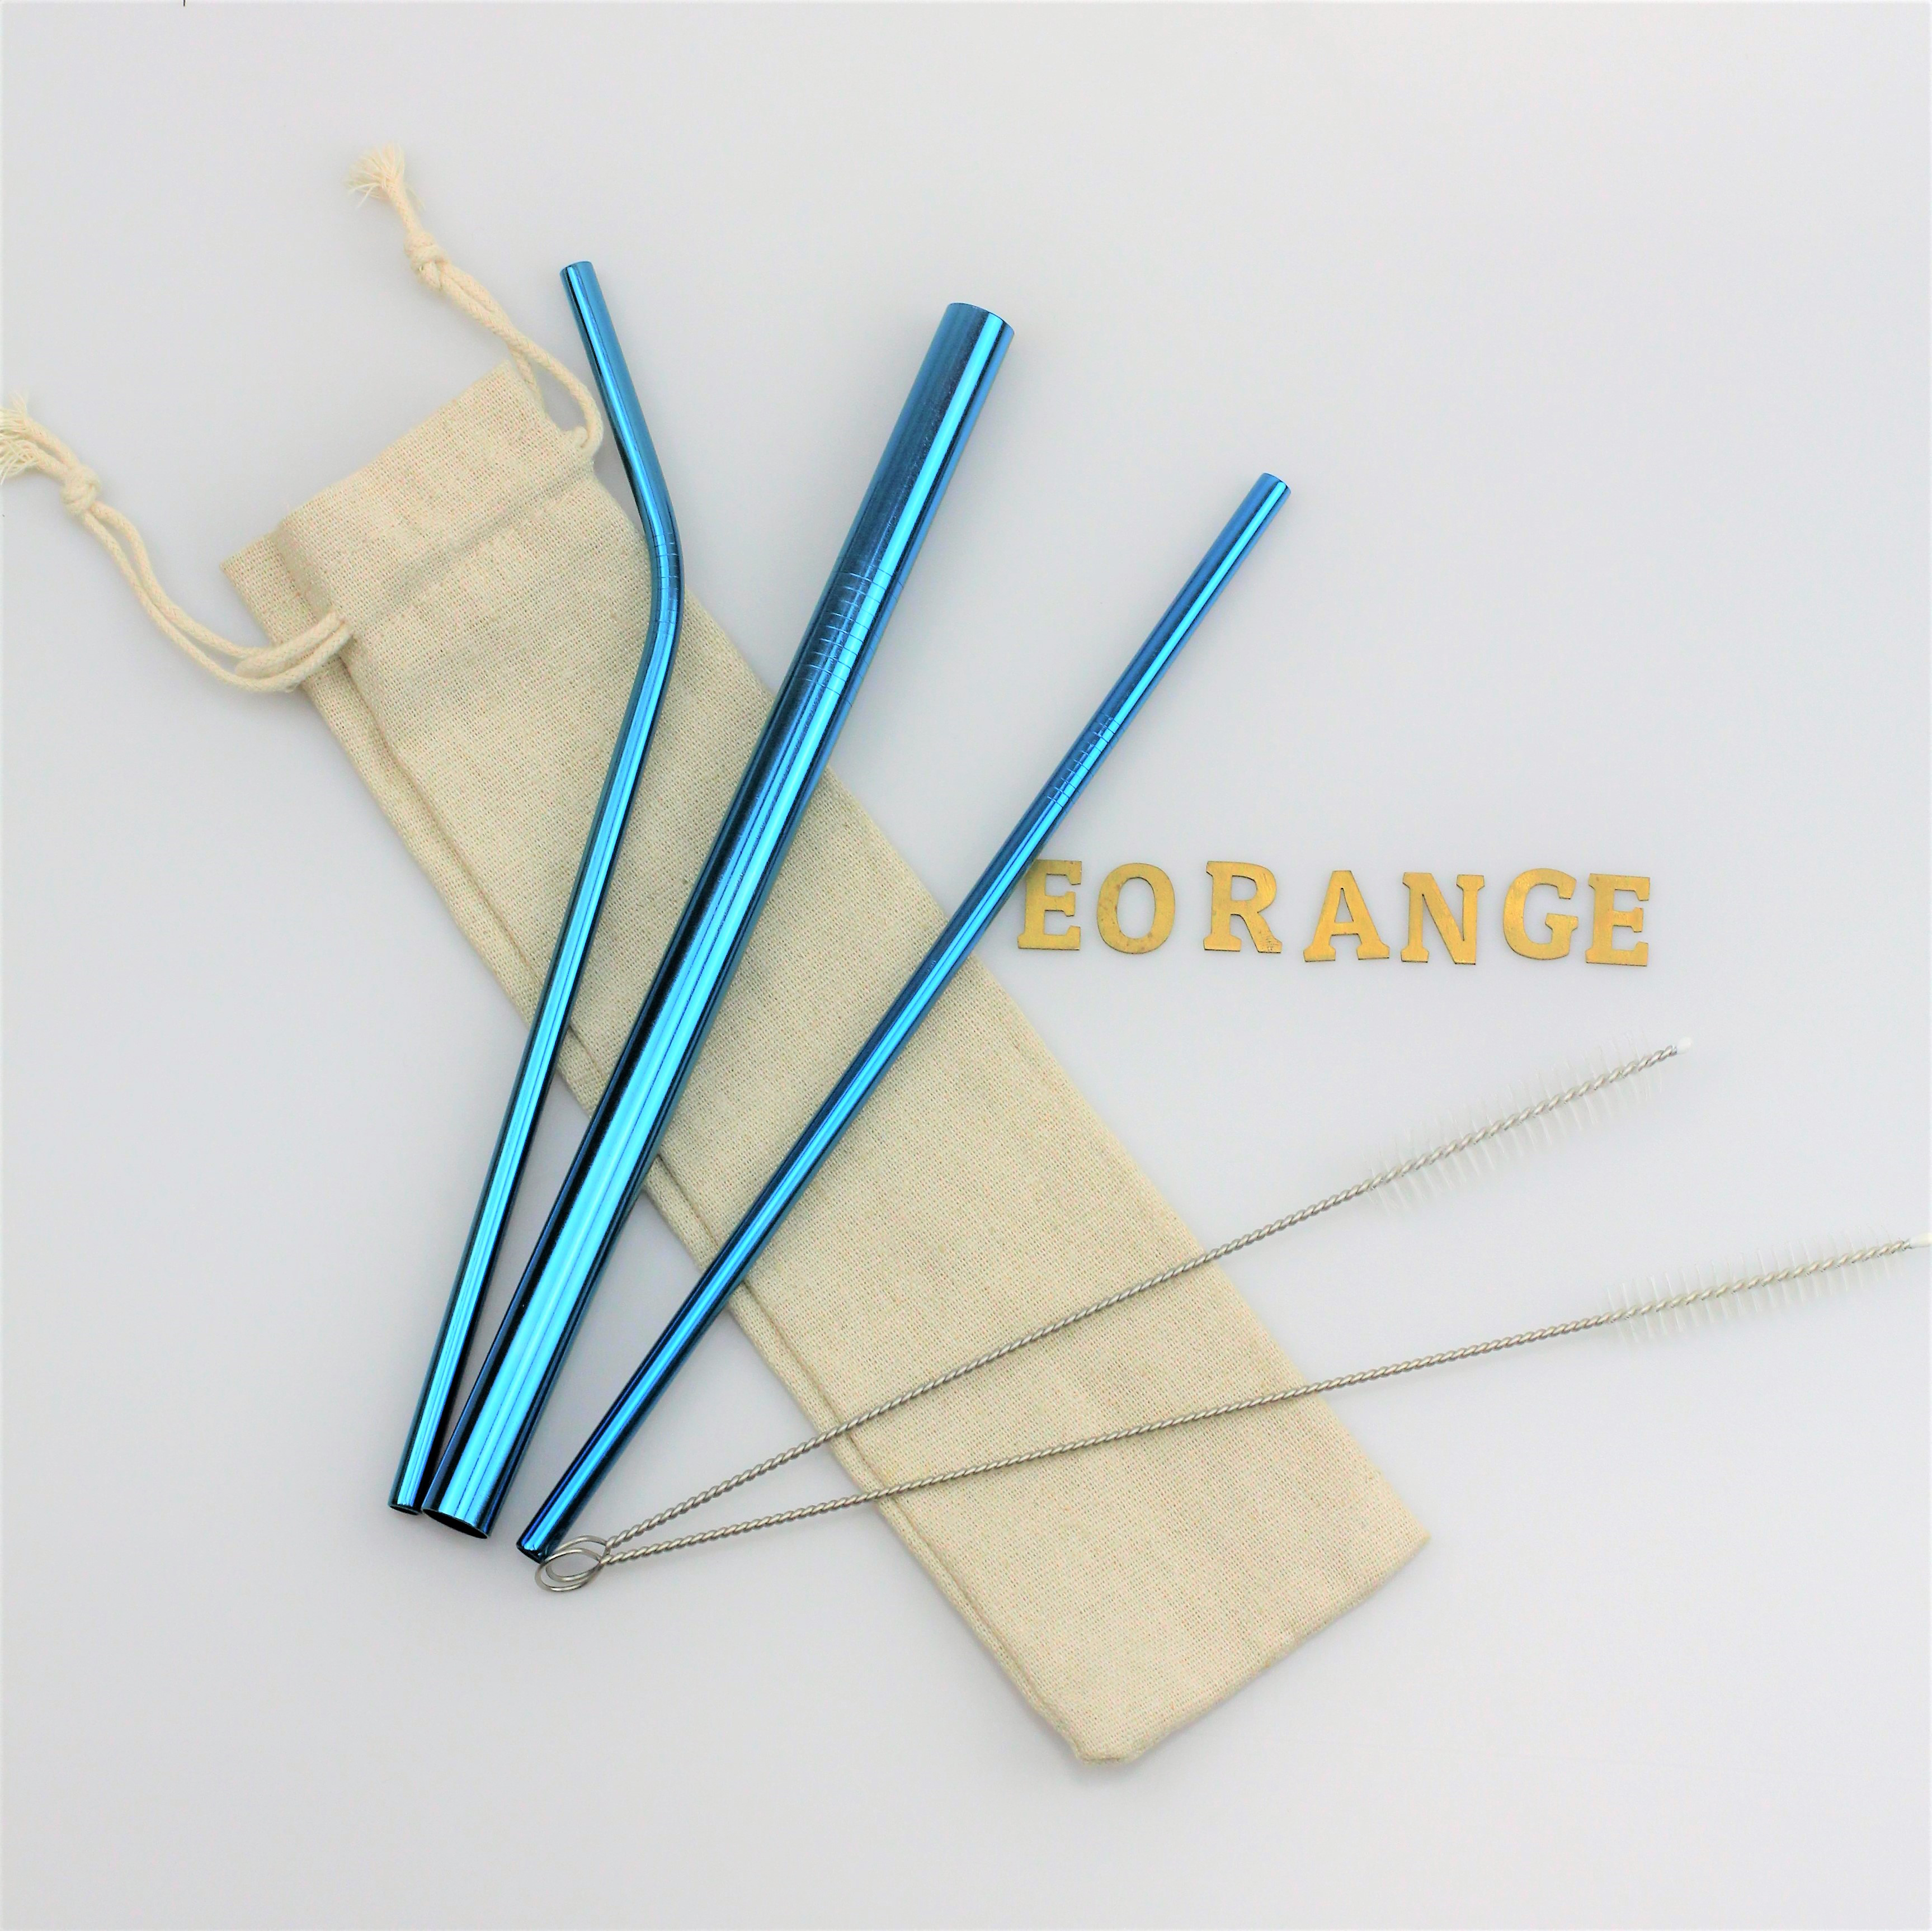 Reusable Stainless Steel Metal Straw Set